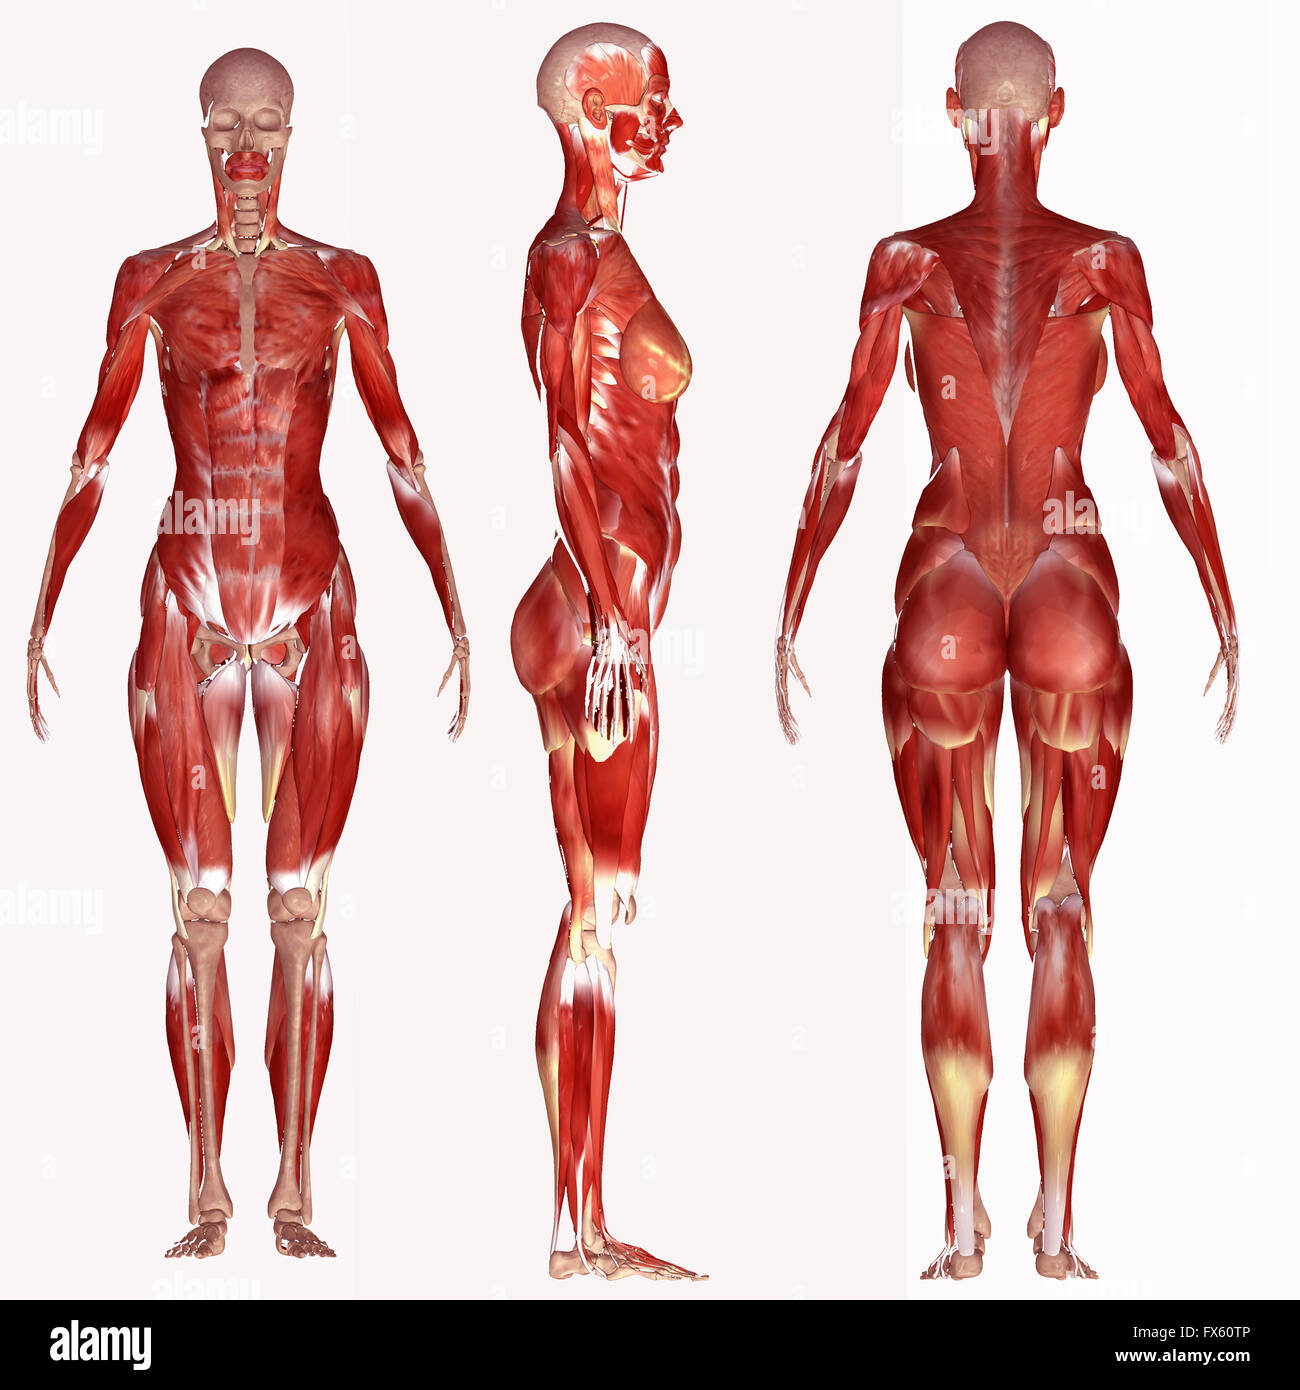 body, human, anatomy, muscle, medical, man, medicine, illustration, Muscles